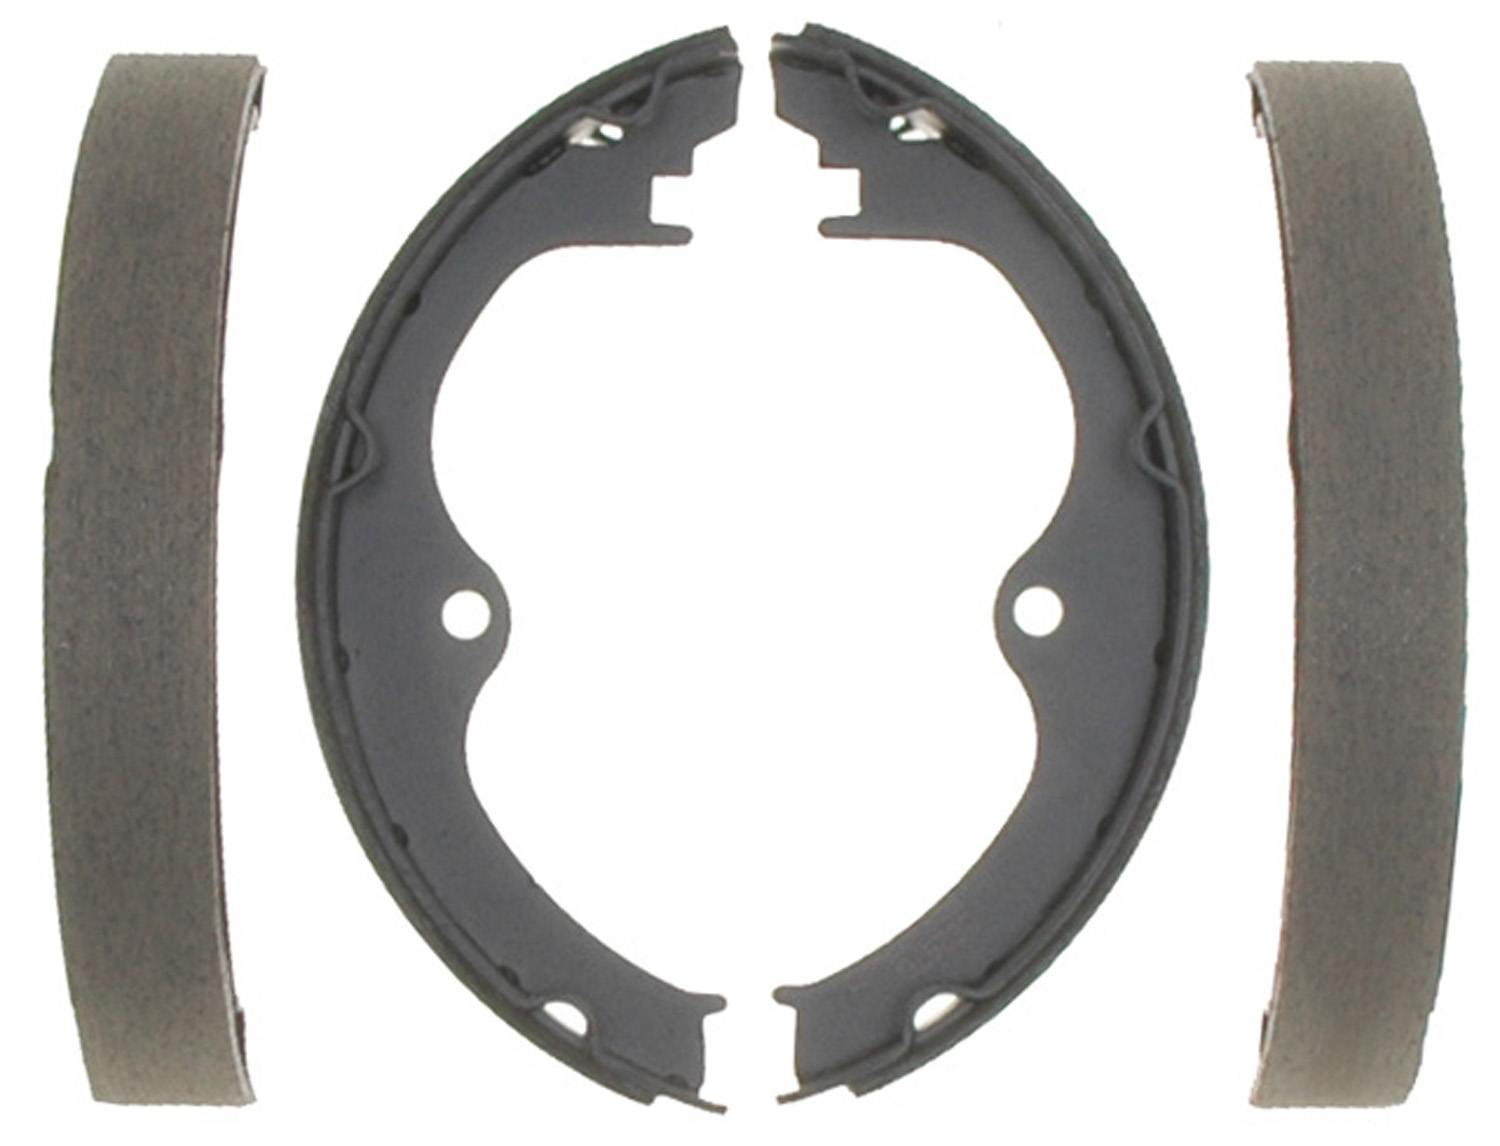 ACDELCO GOLD/PROFESSIONAL BRAKES - Bonded Parking Brake Shoe - ADU 17556B